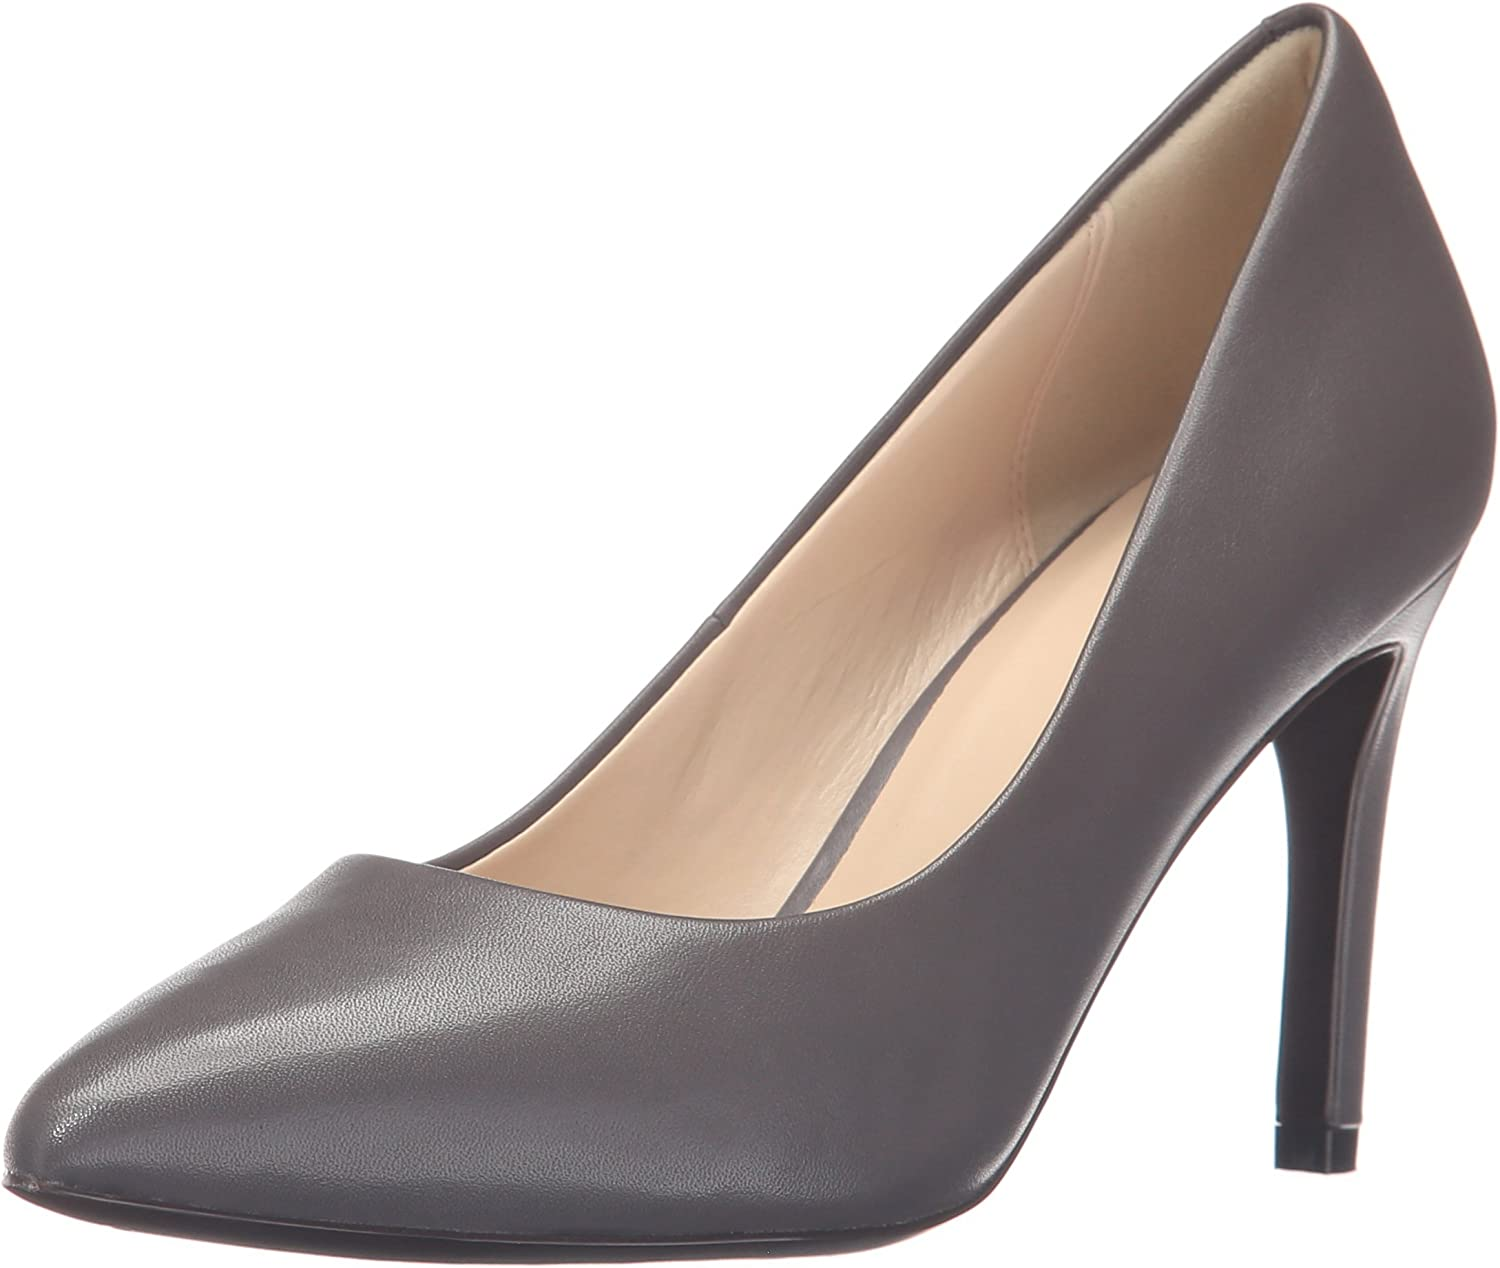 Cole Haan Amelia Grand Pump 85 85 85 mm Pumpar svart  generell hög kvalitet